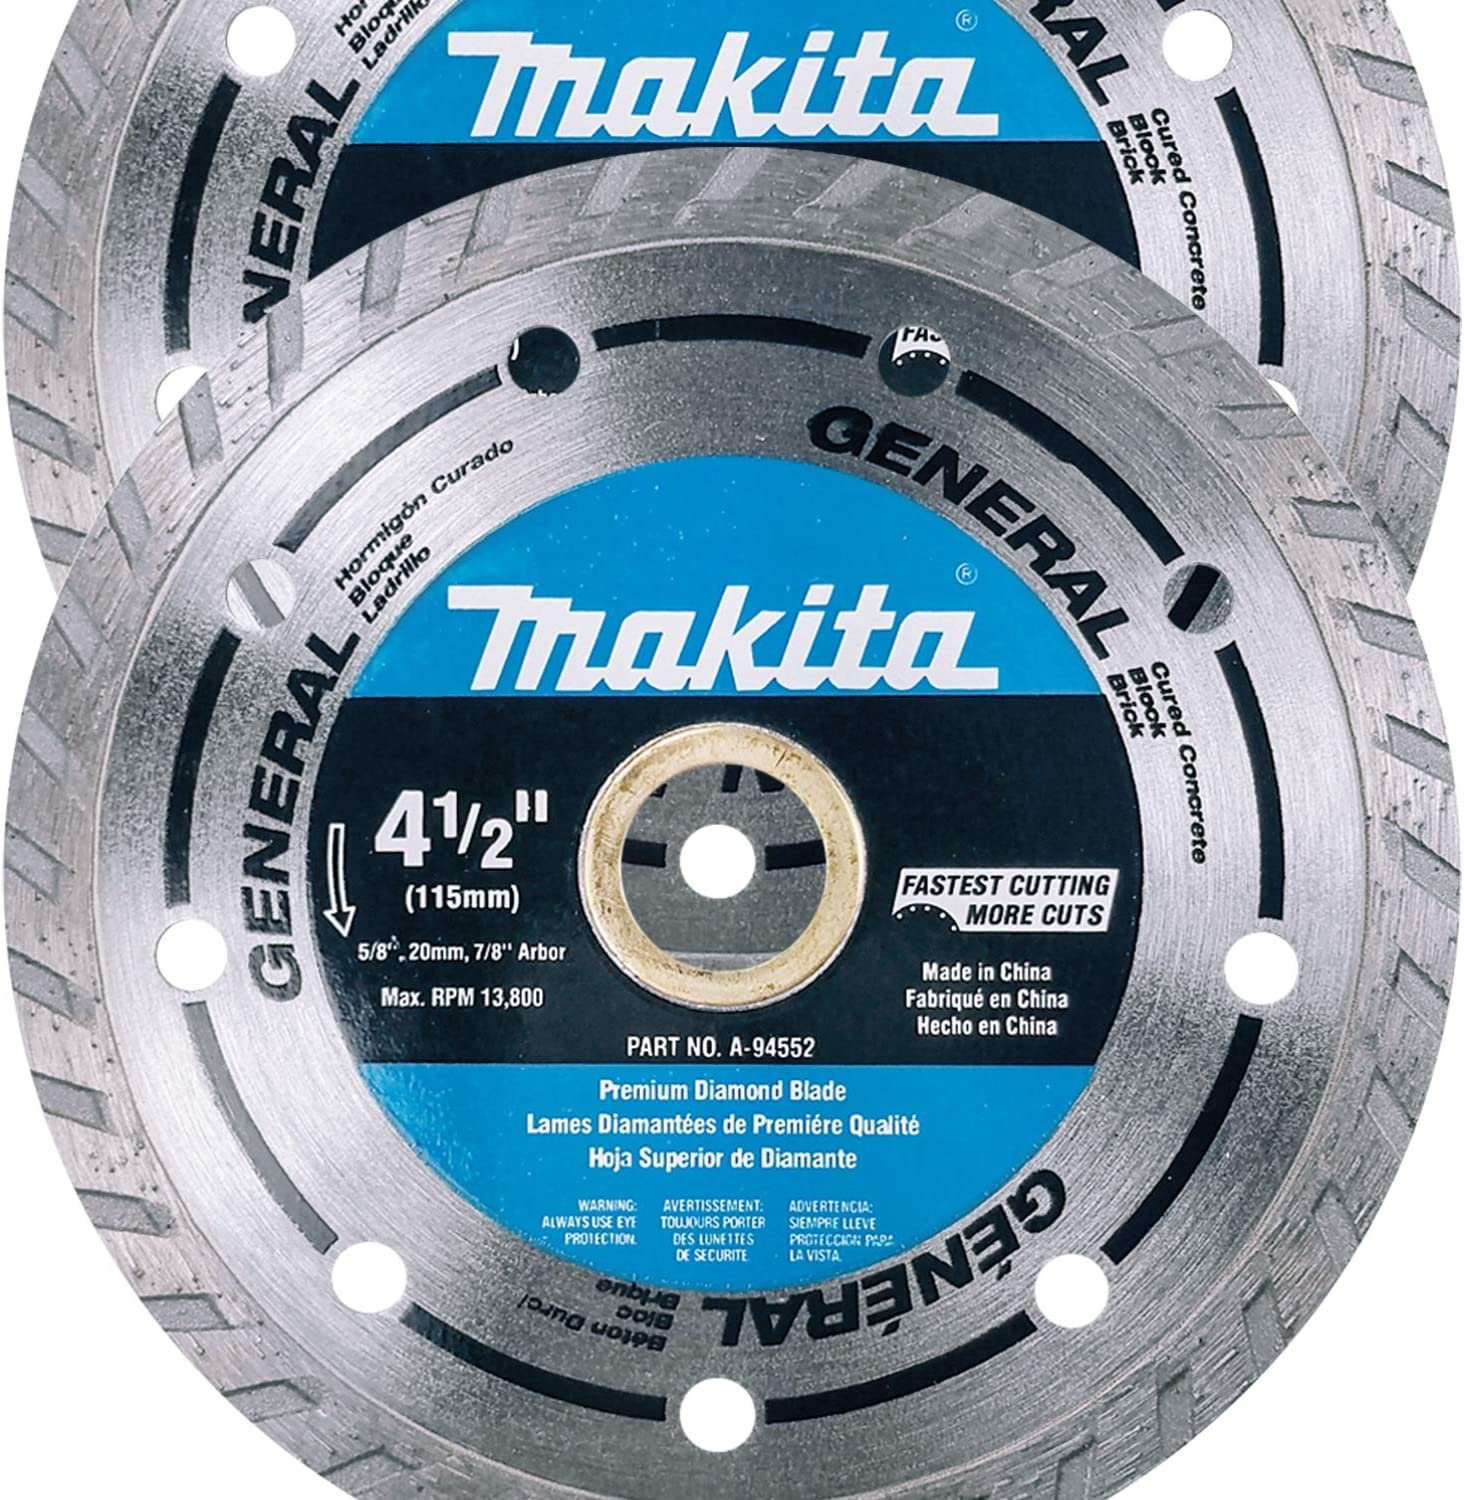 """Makita 2 Pack - 4.5"""" Turbo Diamond Blades For Grinders &Amp; Circular Saws - Ultra-Fast Cutting For Concrete, Masonry &Amp; Brick - 5/8"""", 20Mm &Amp; 7/8"""" Arbors"""